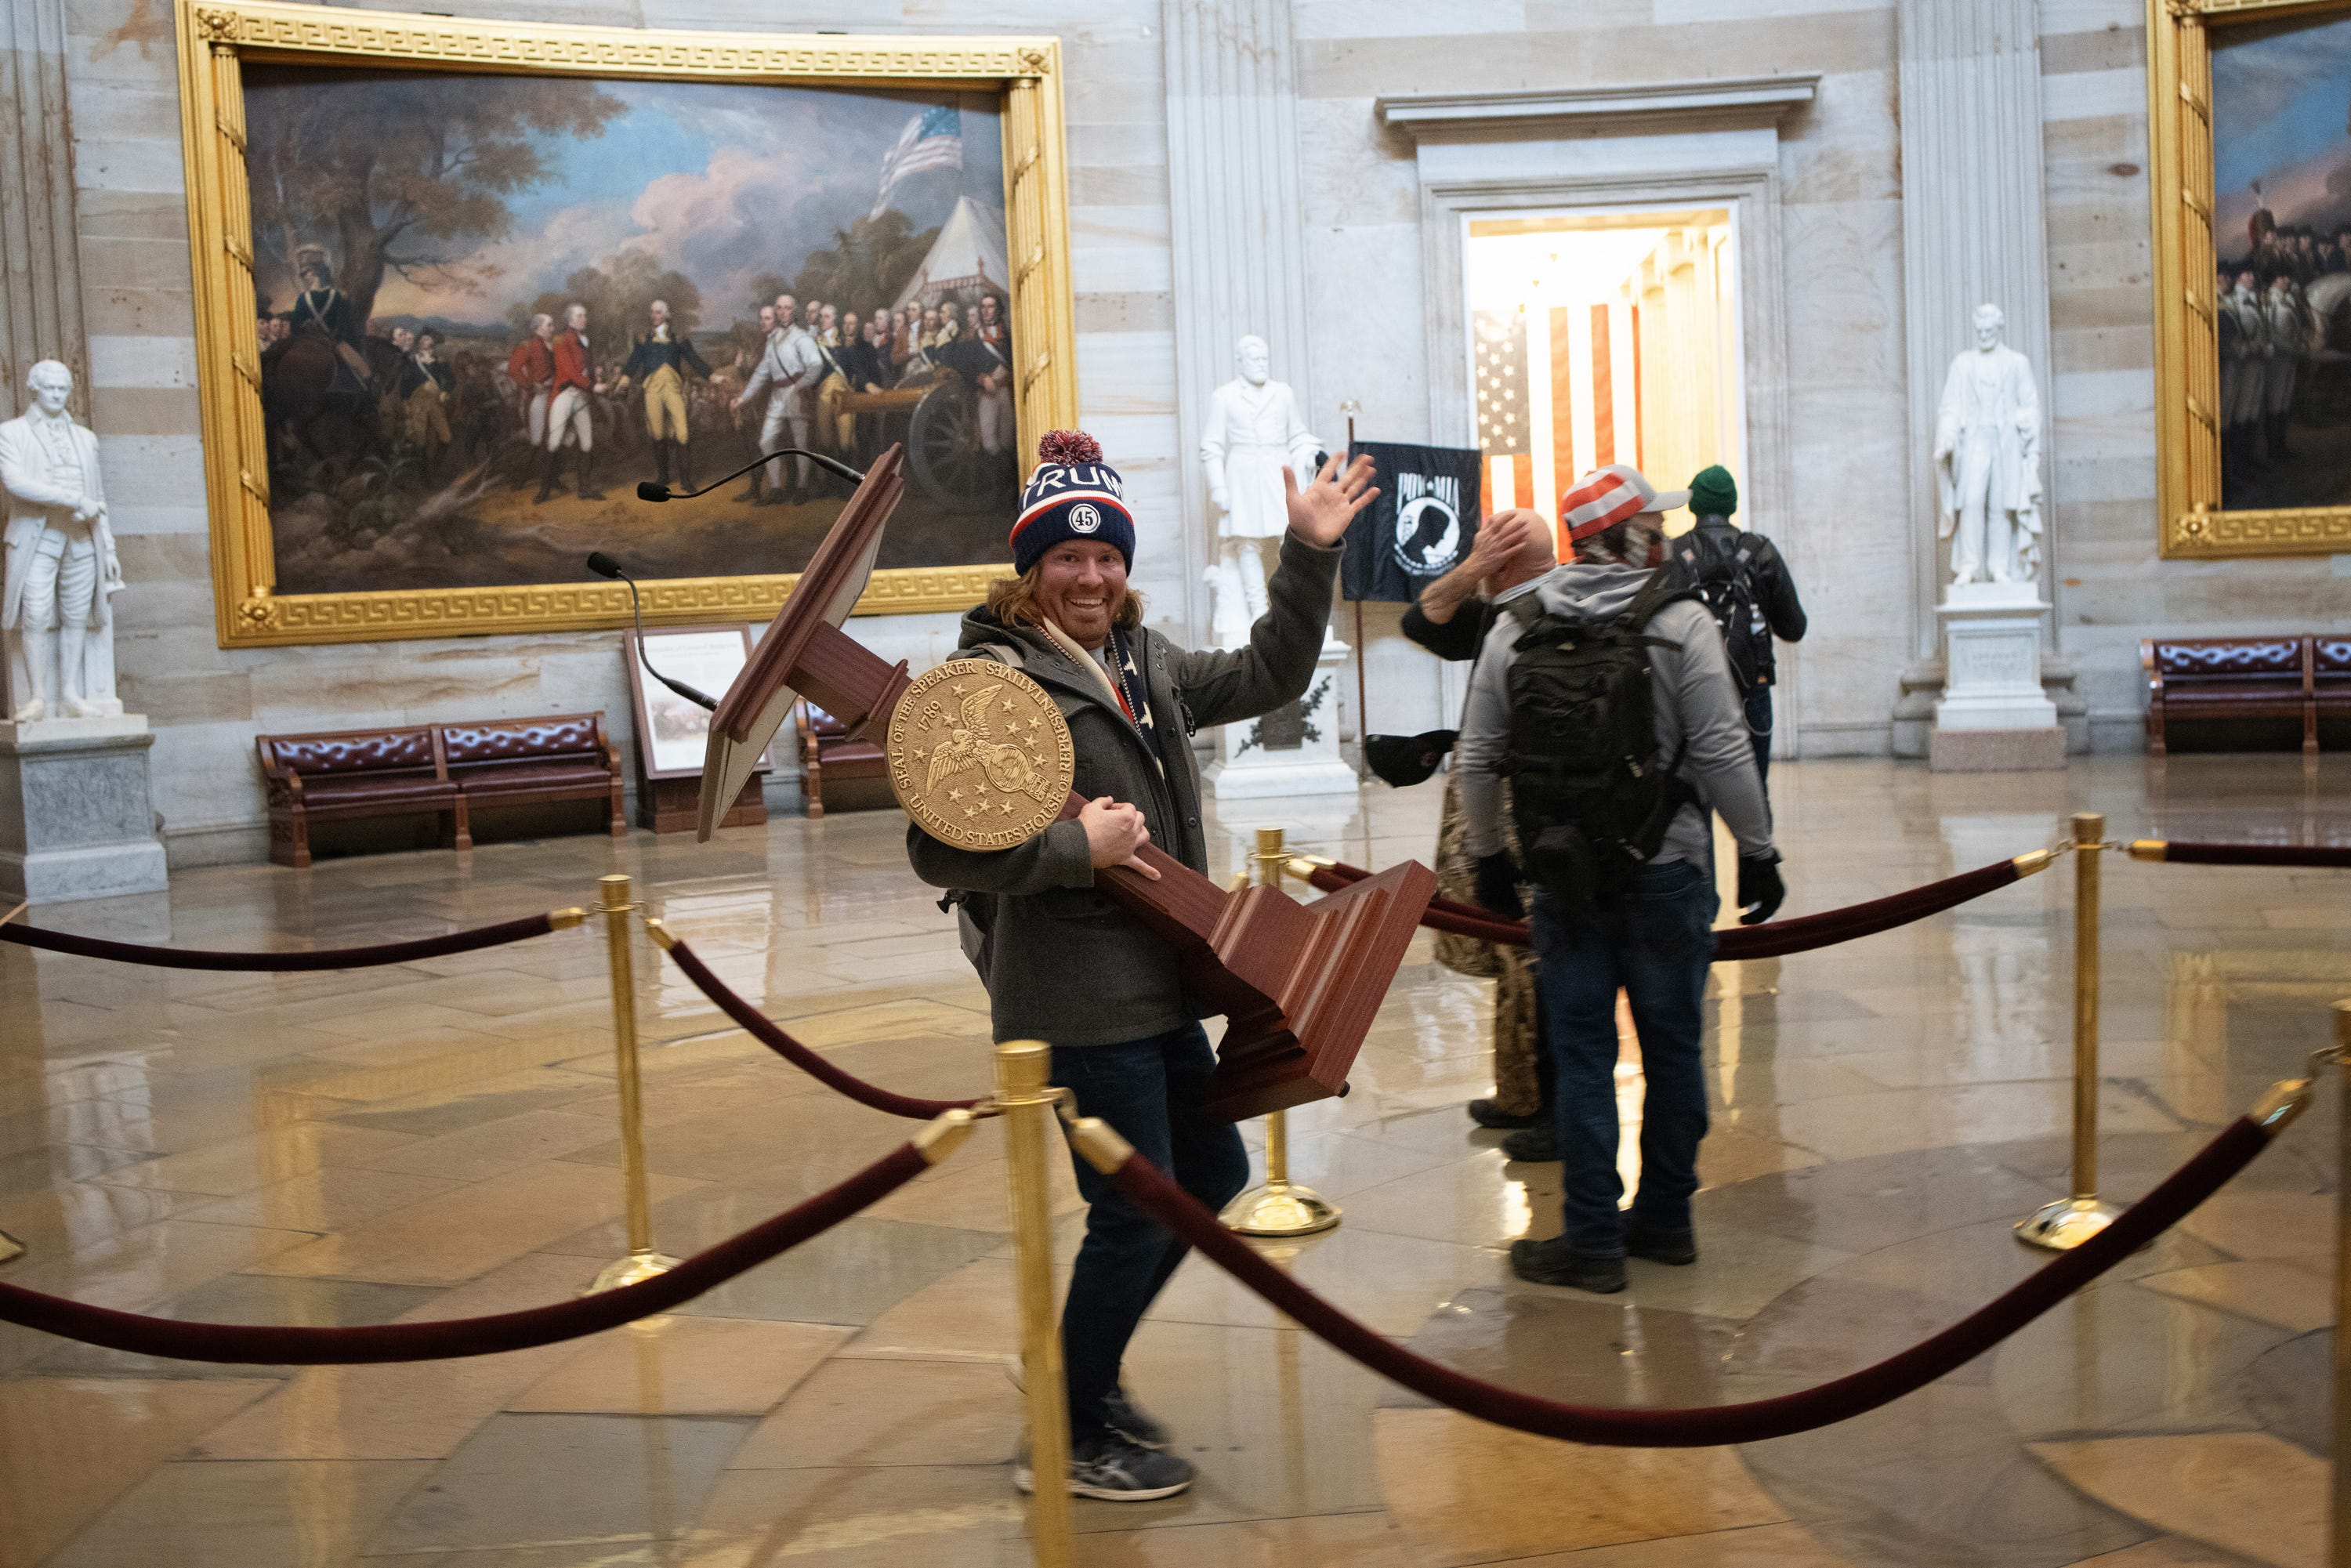 Capitol riot live updates: Air Force veteran fired after reported participation; Apple suspends Parler from App Store